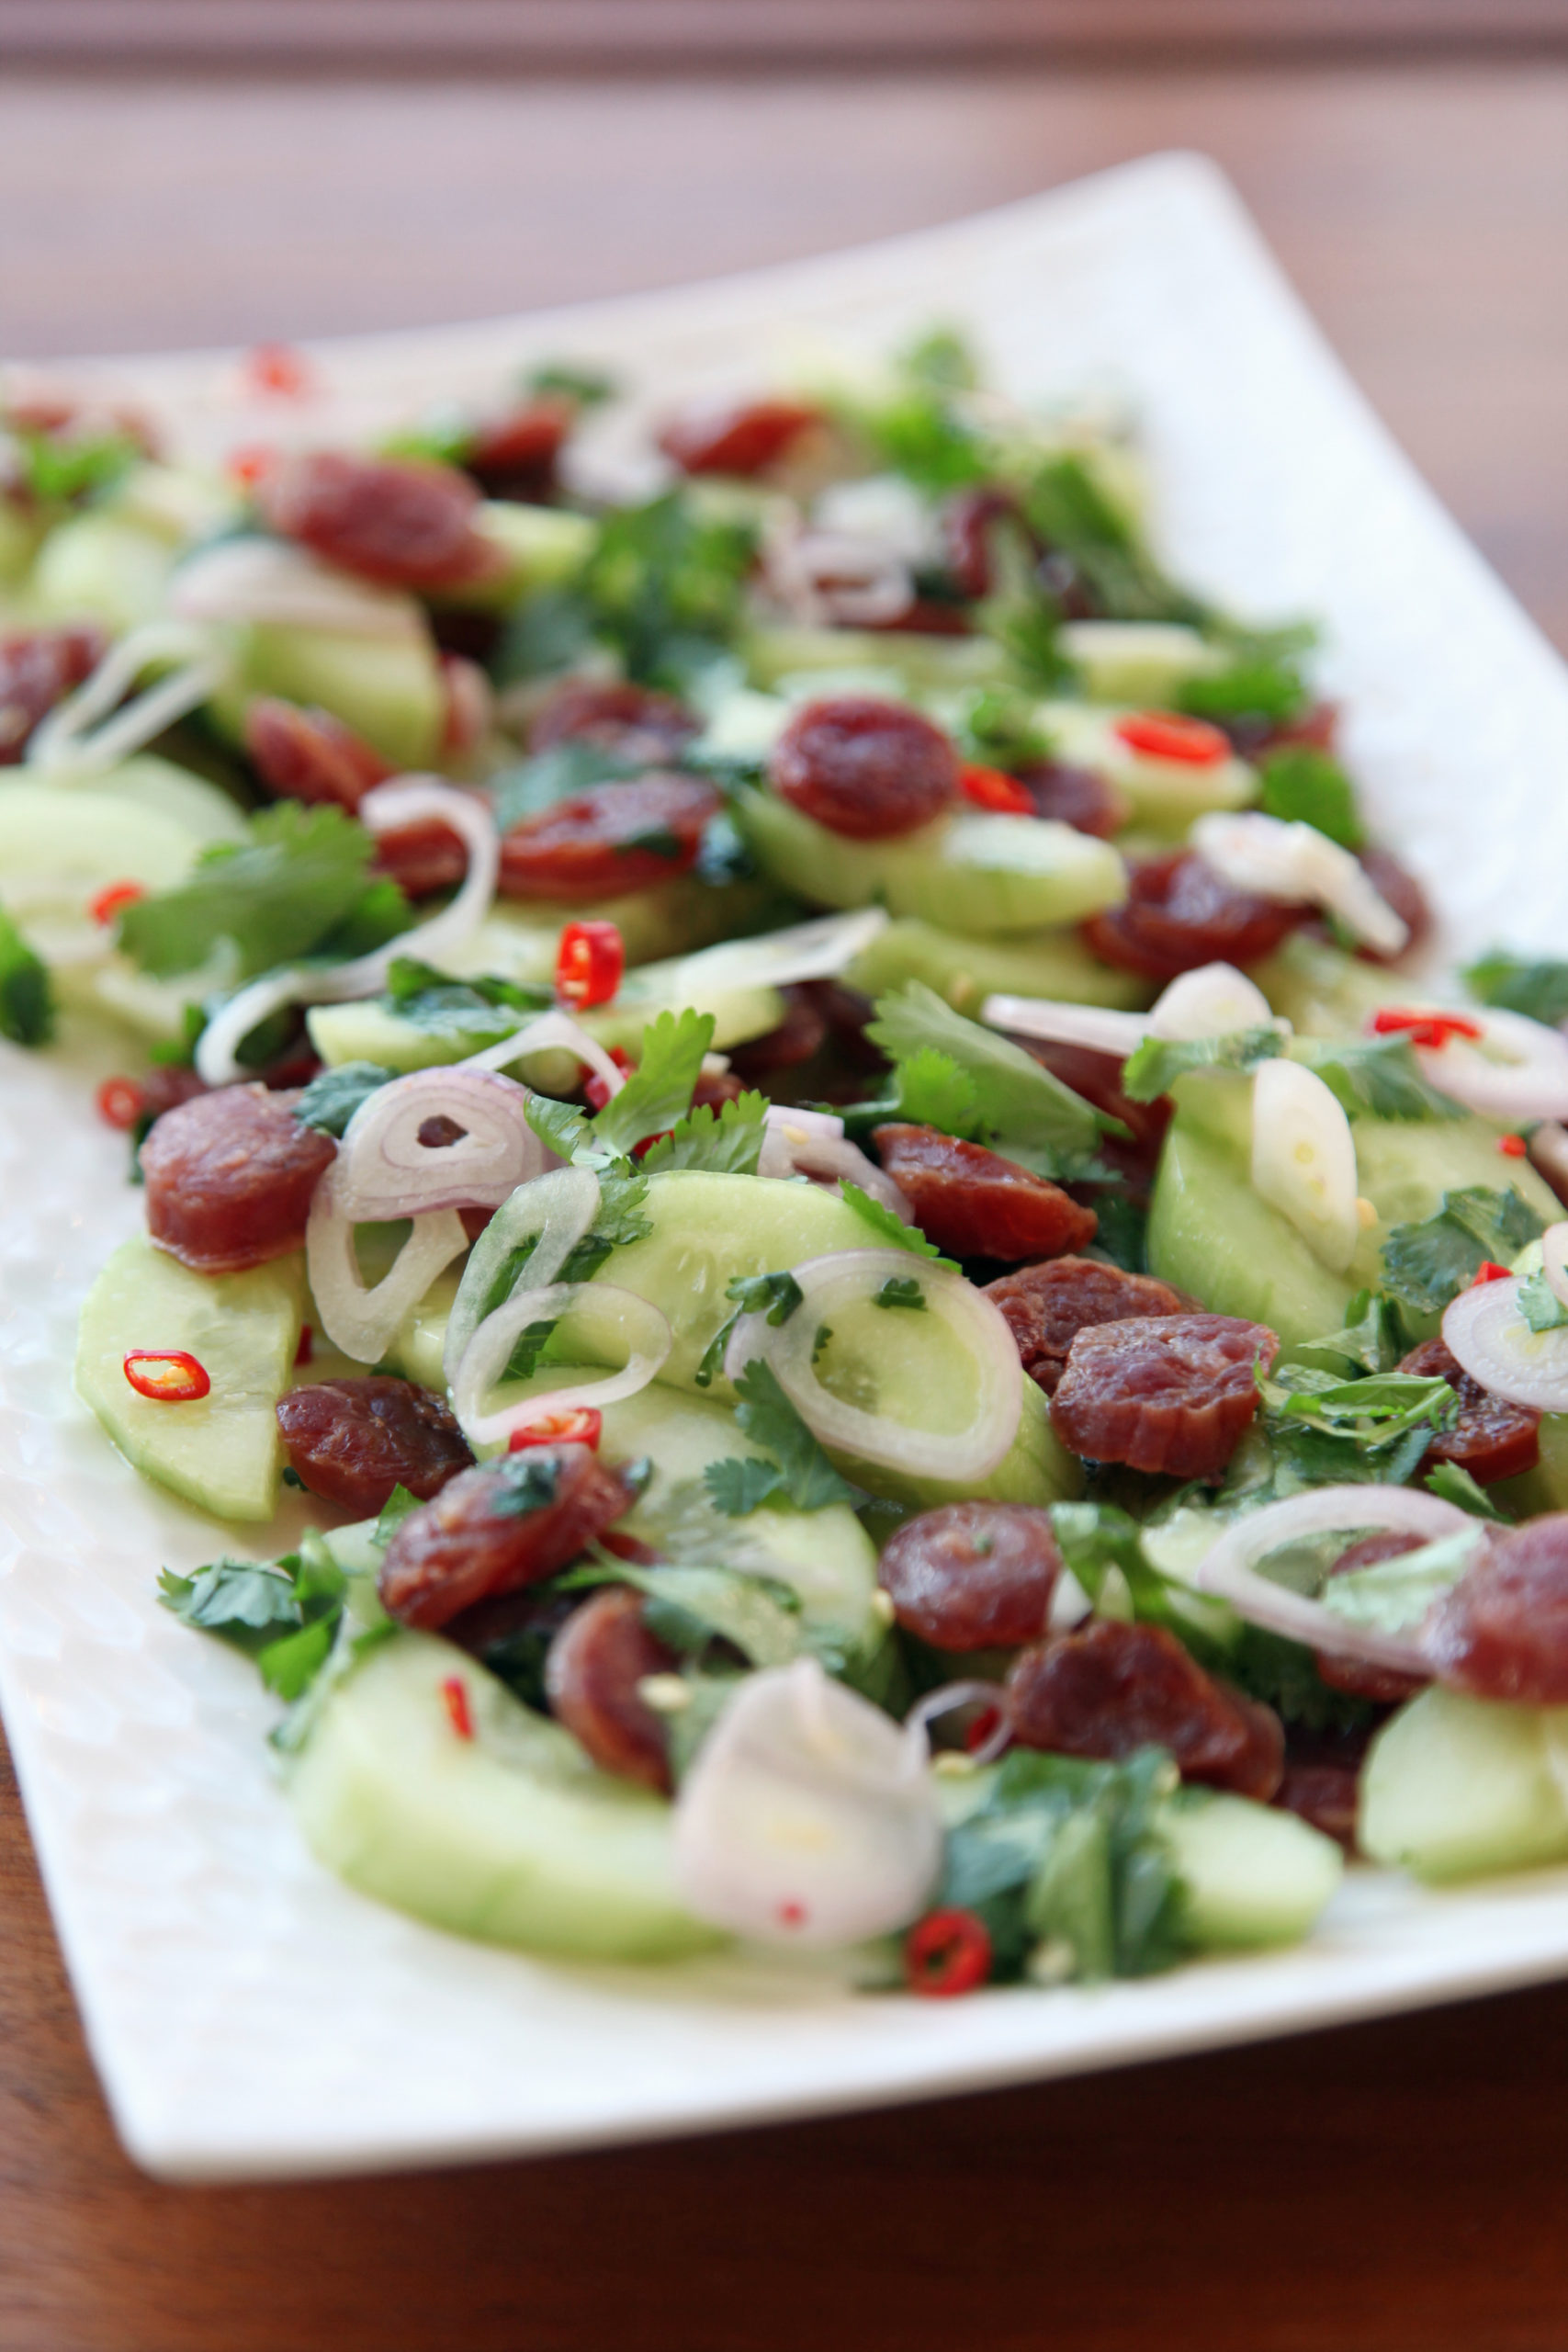 Spicy Thai Cucumber and Sausage Salad | amodestfeast.com | A Modest Feast